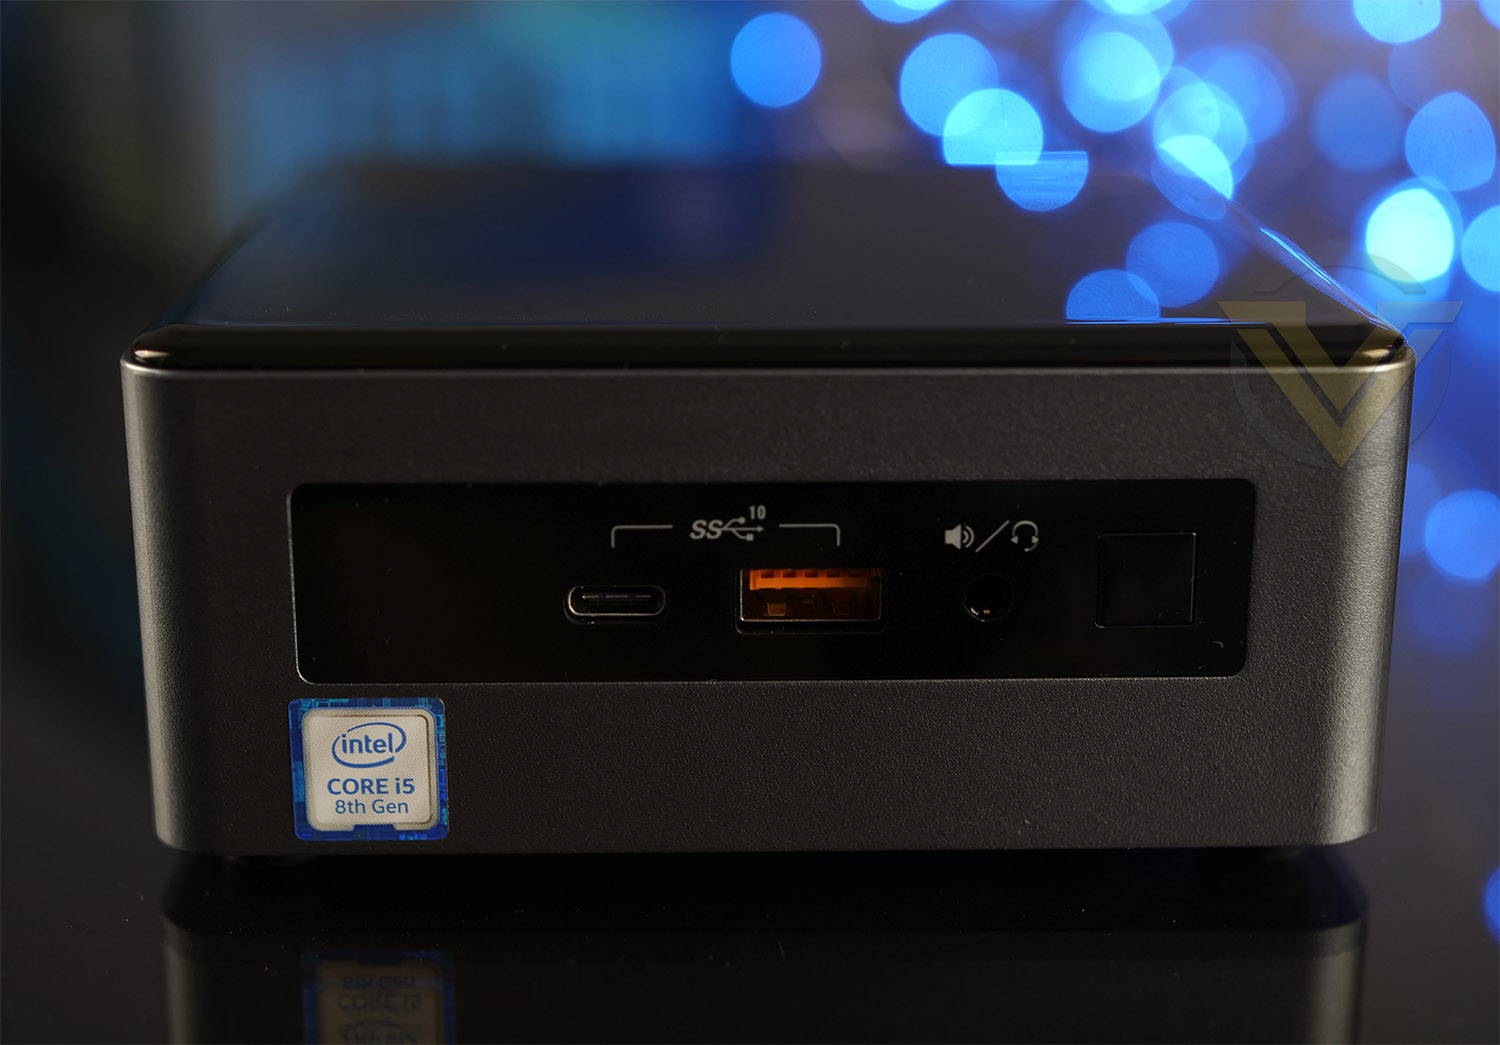 Intel NUC 8 Mainstream-G Mini PC NUC8i5INH Review - Bundle